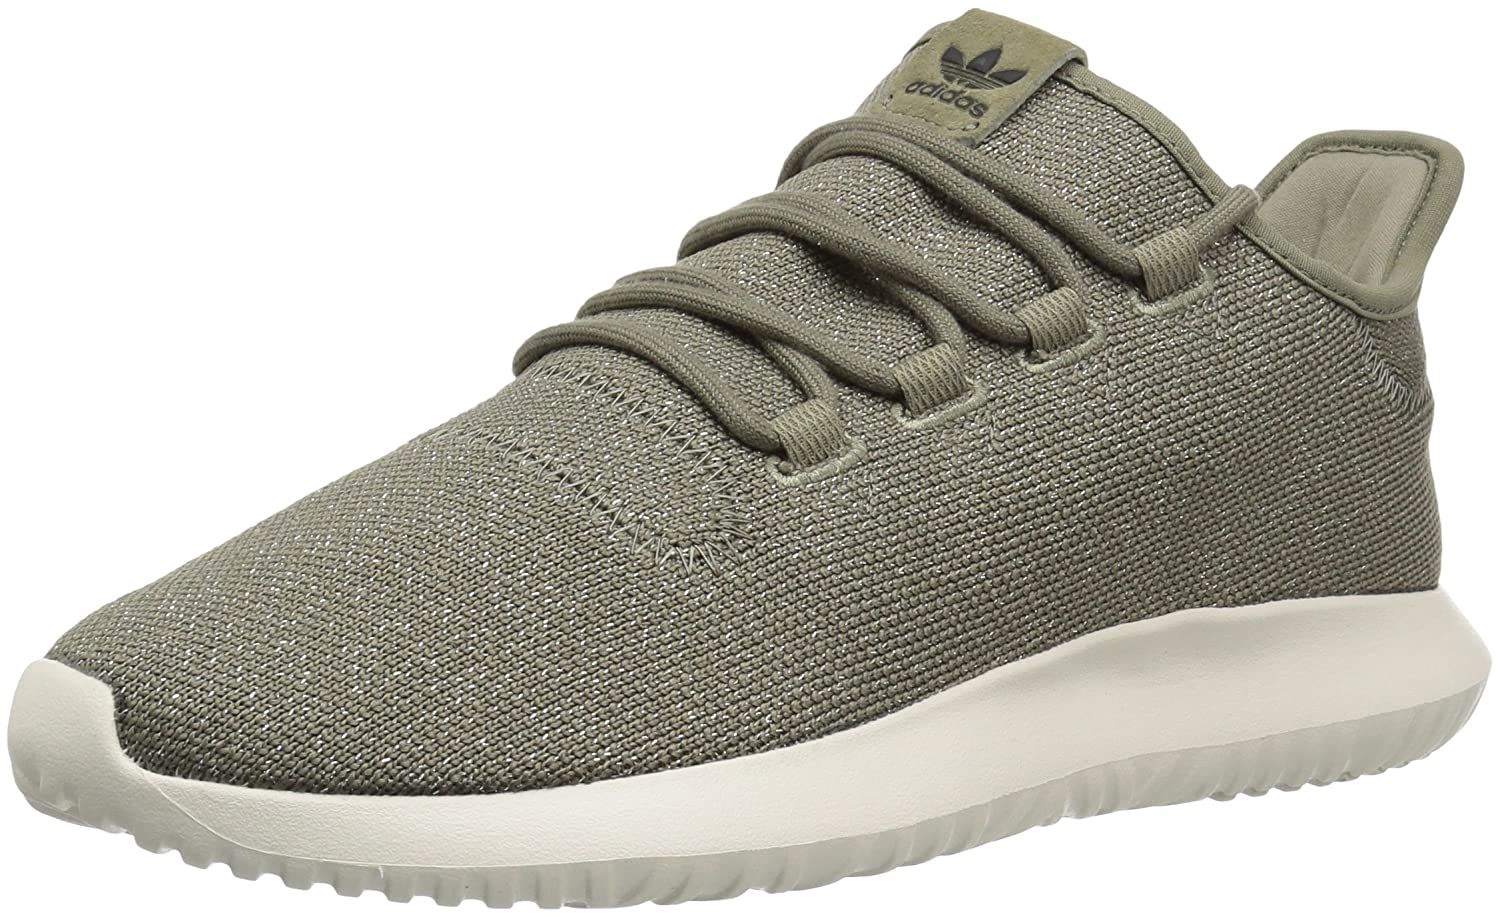 adidas Originals Women's Tubular Shadow W Fashion Sneaker B06XPNXPZX 9.5 B(M) US|Trace Cargo/Trace Cargo/Chalk White